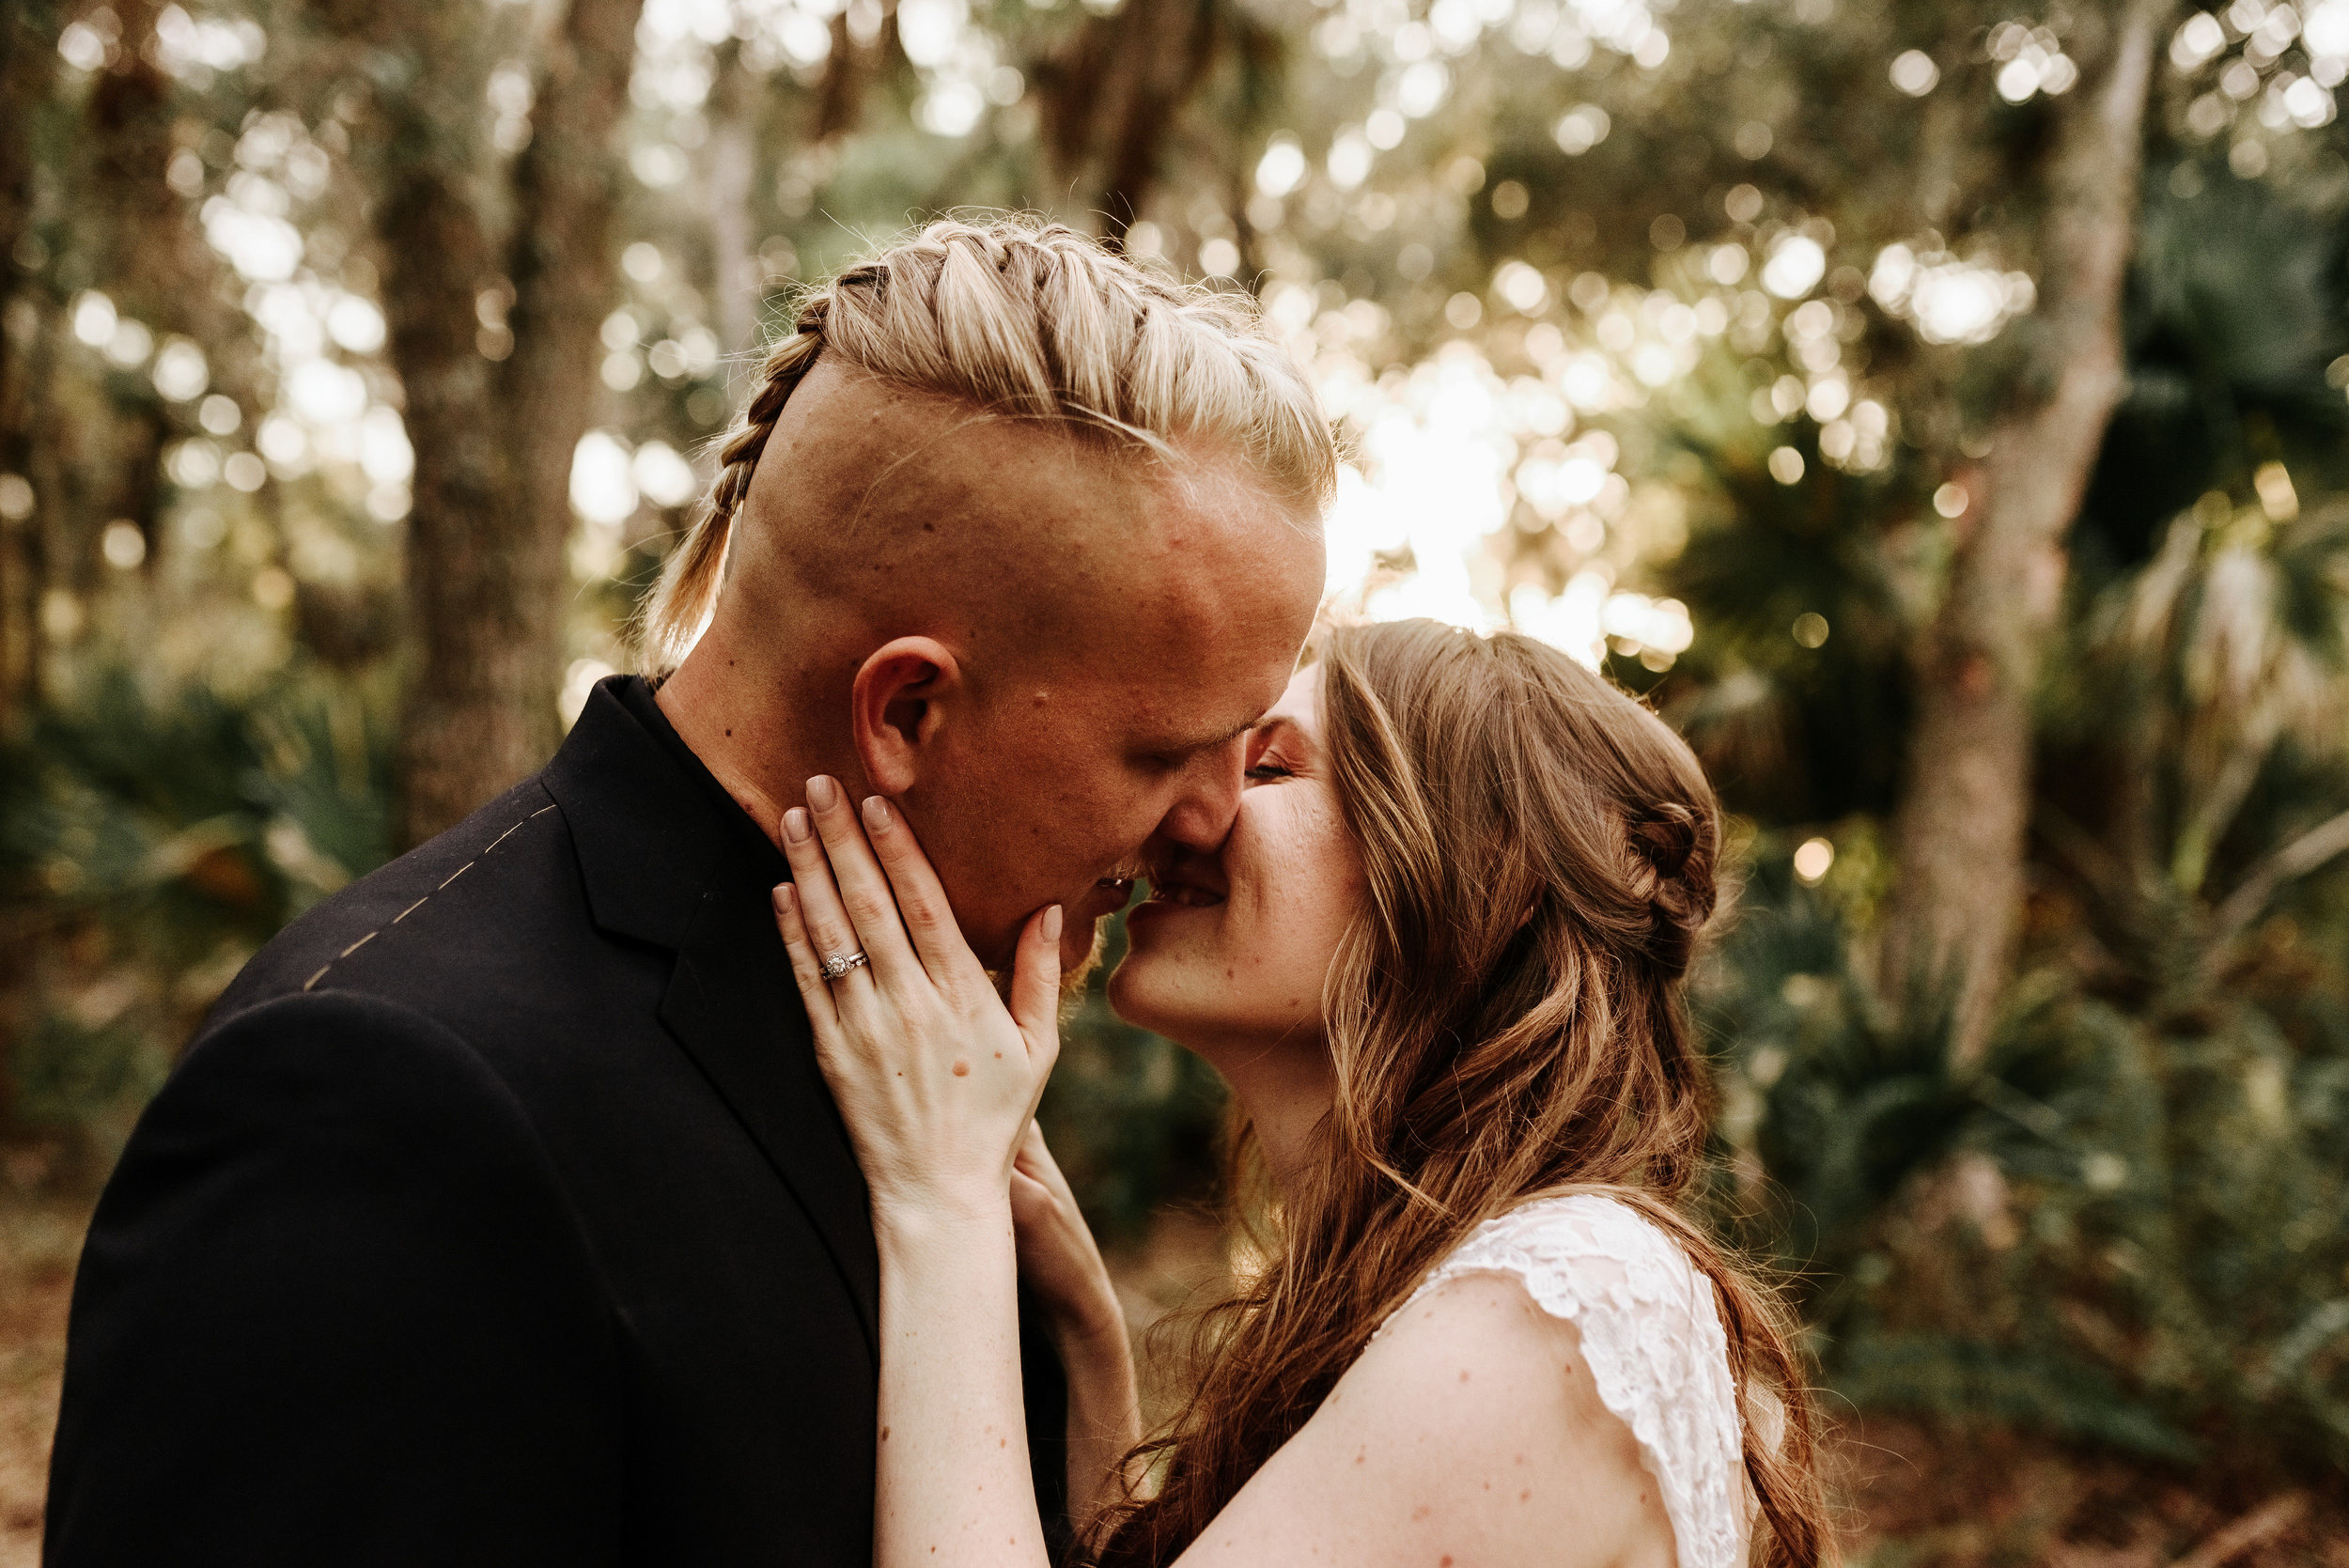 Jess_Micah_Portrait_Session_Wedding_Vero_Beach_Florida_Photography_by_V_0490.jpg